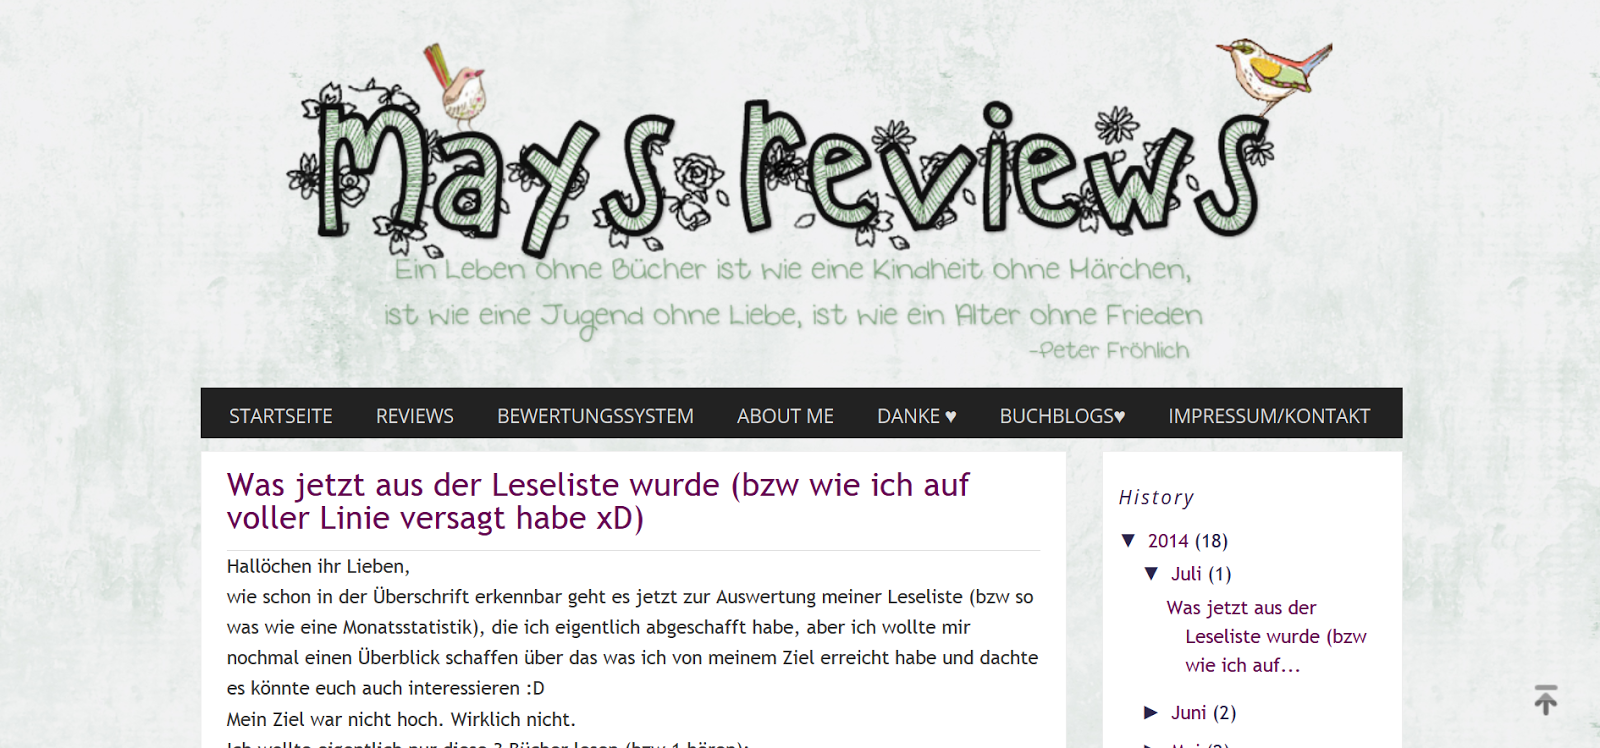 http://mays-reviews.blogspot.de/